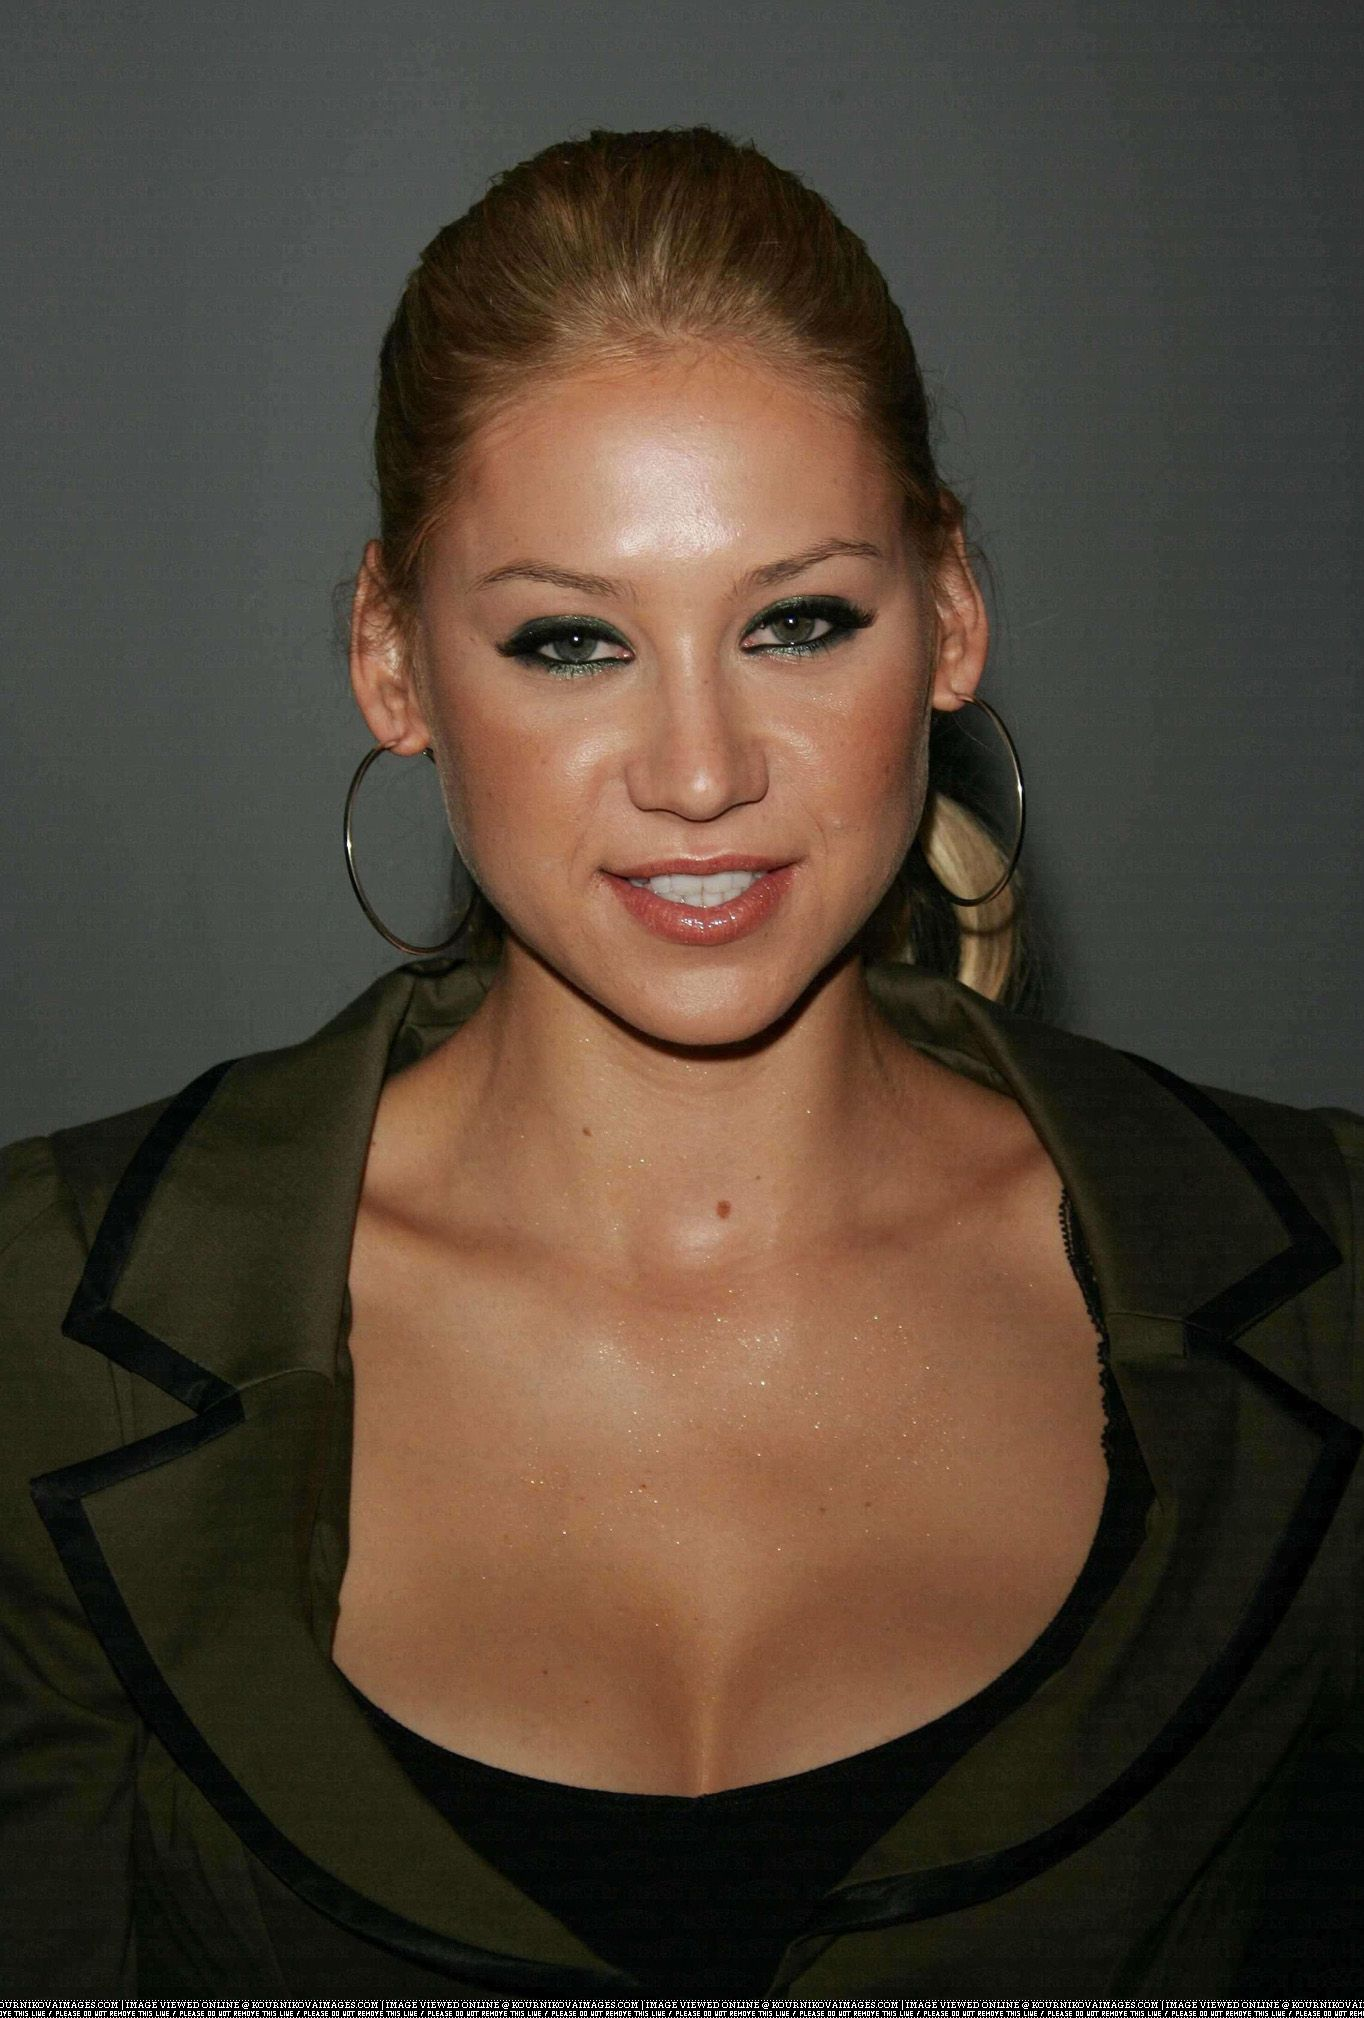 Anna Kournikova - Photo Set